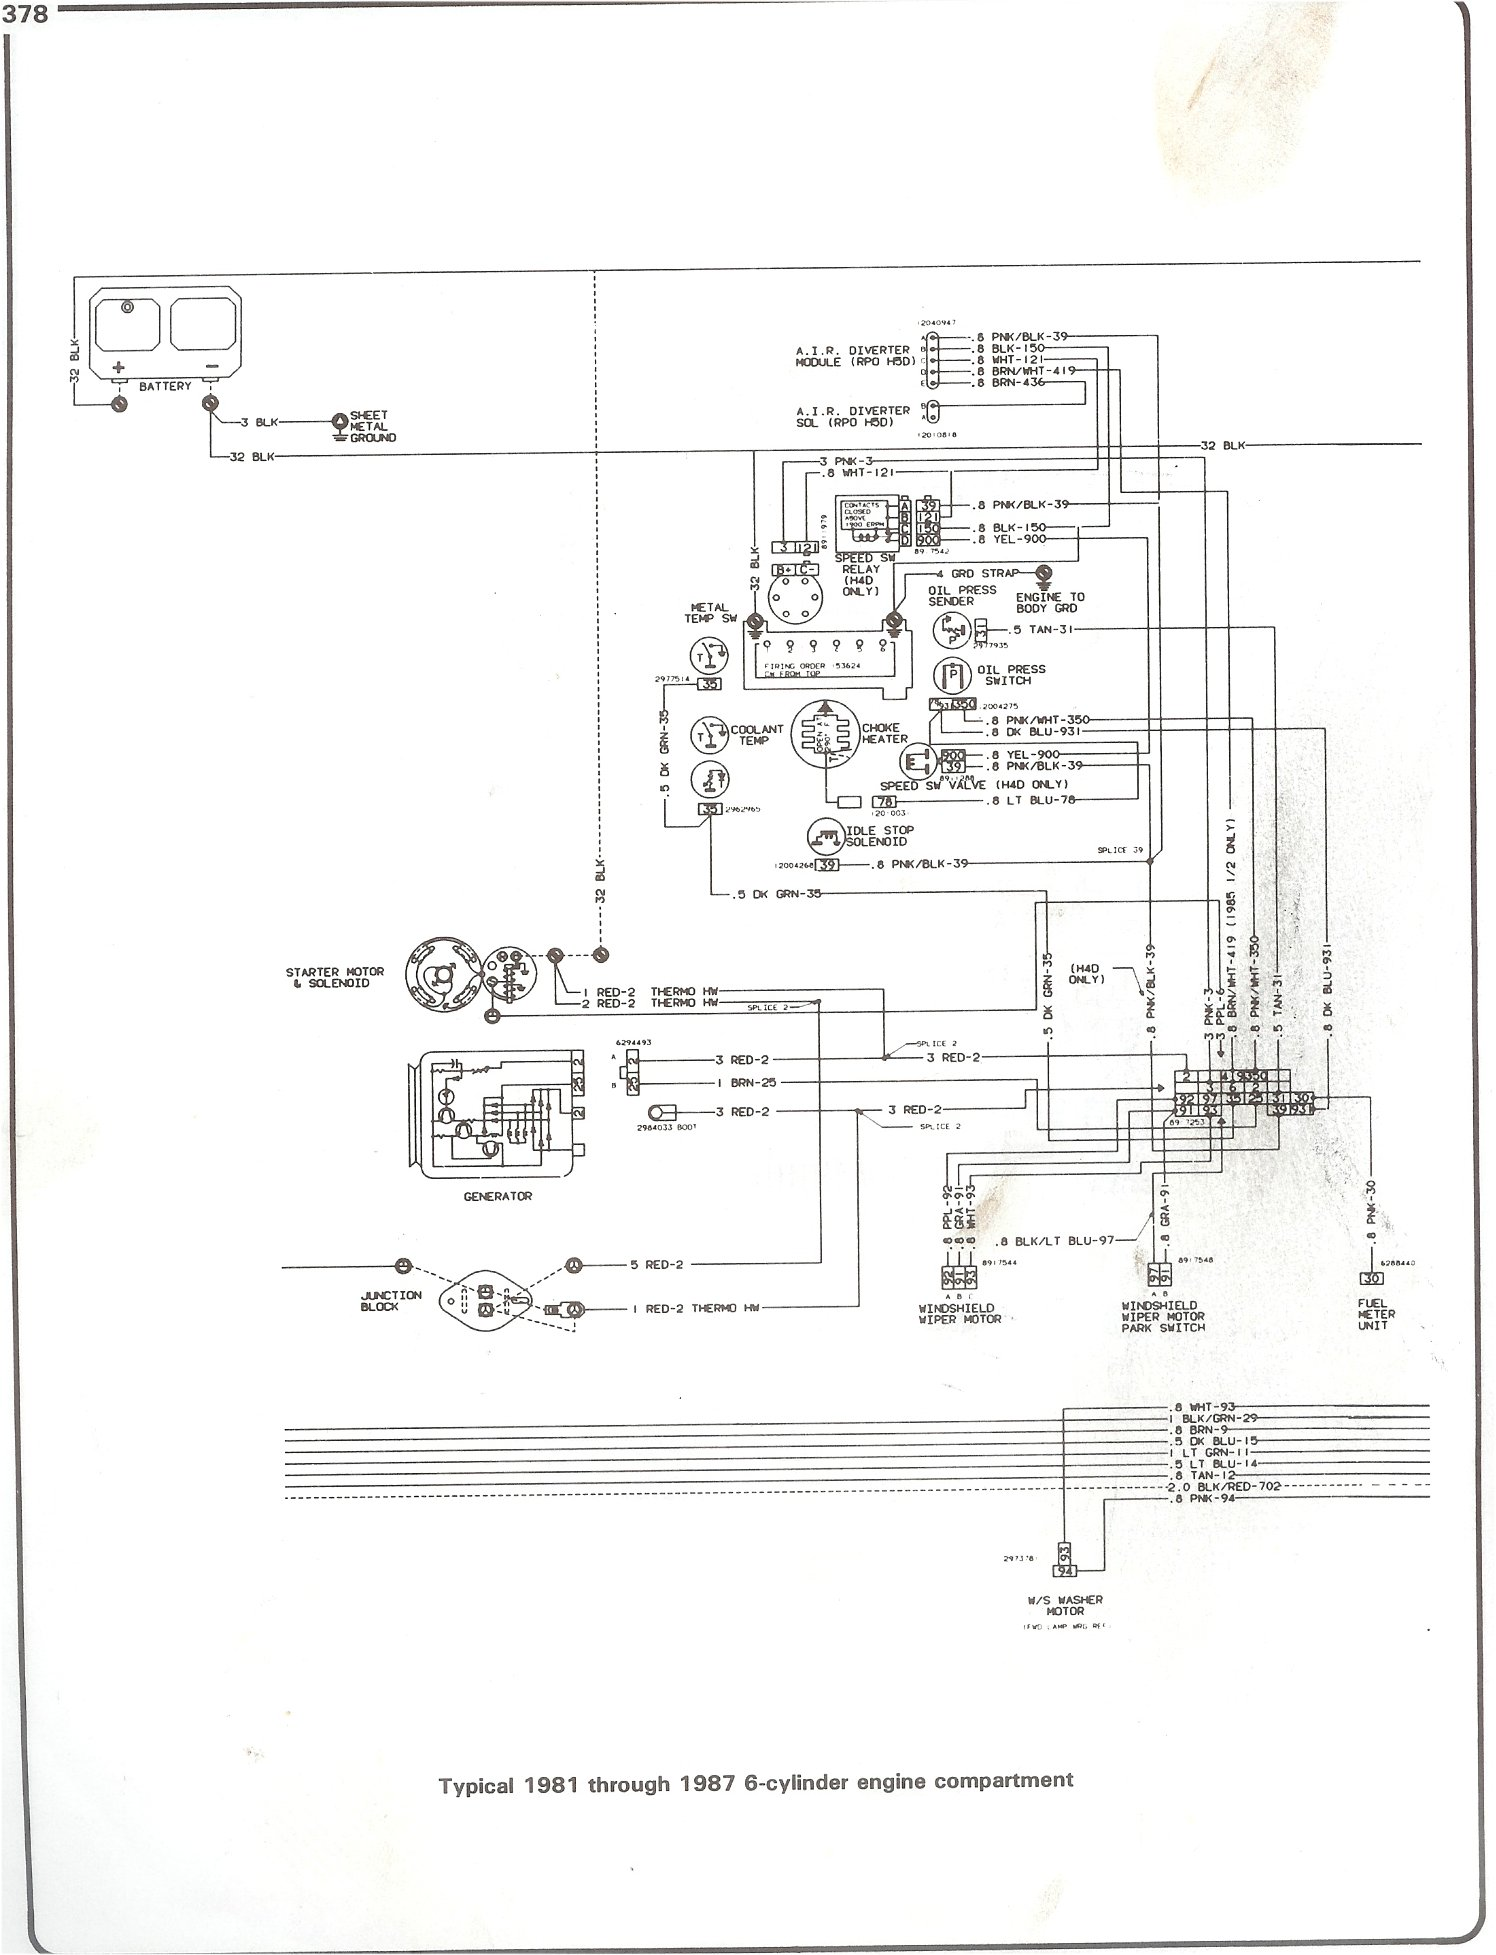 Wrg 96 S10 Engine Compartment Diagram